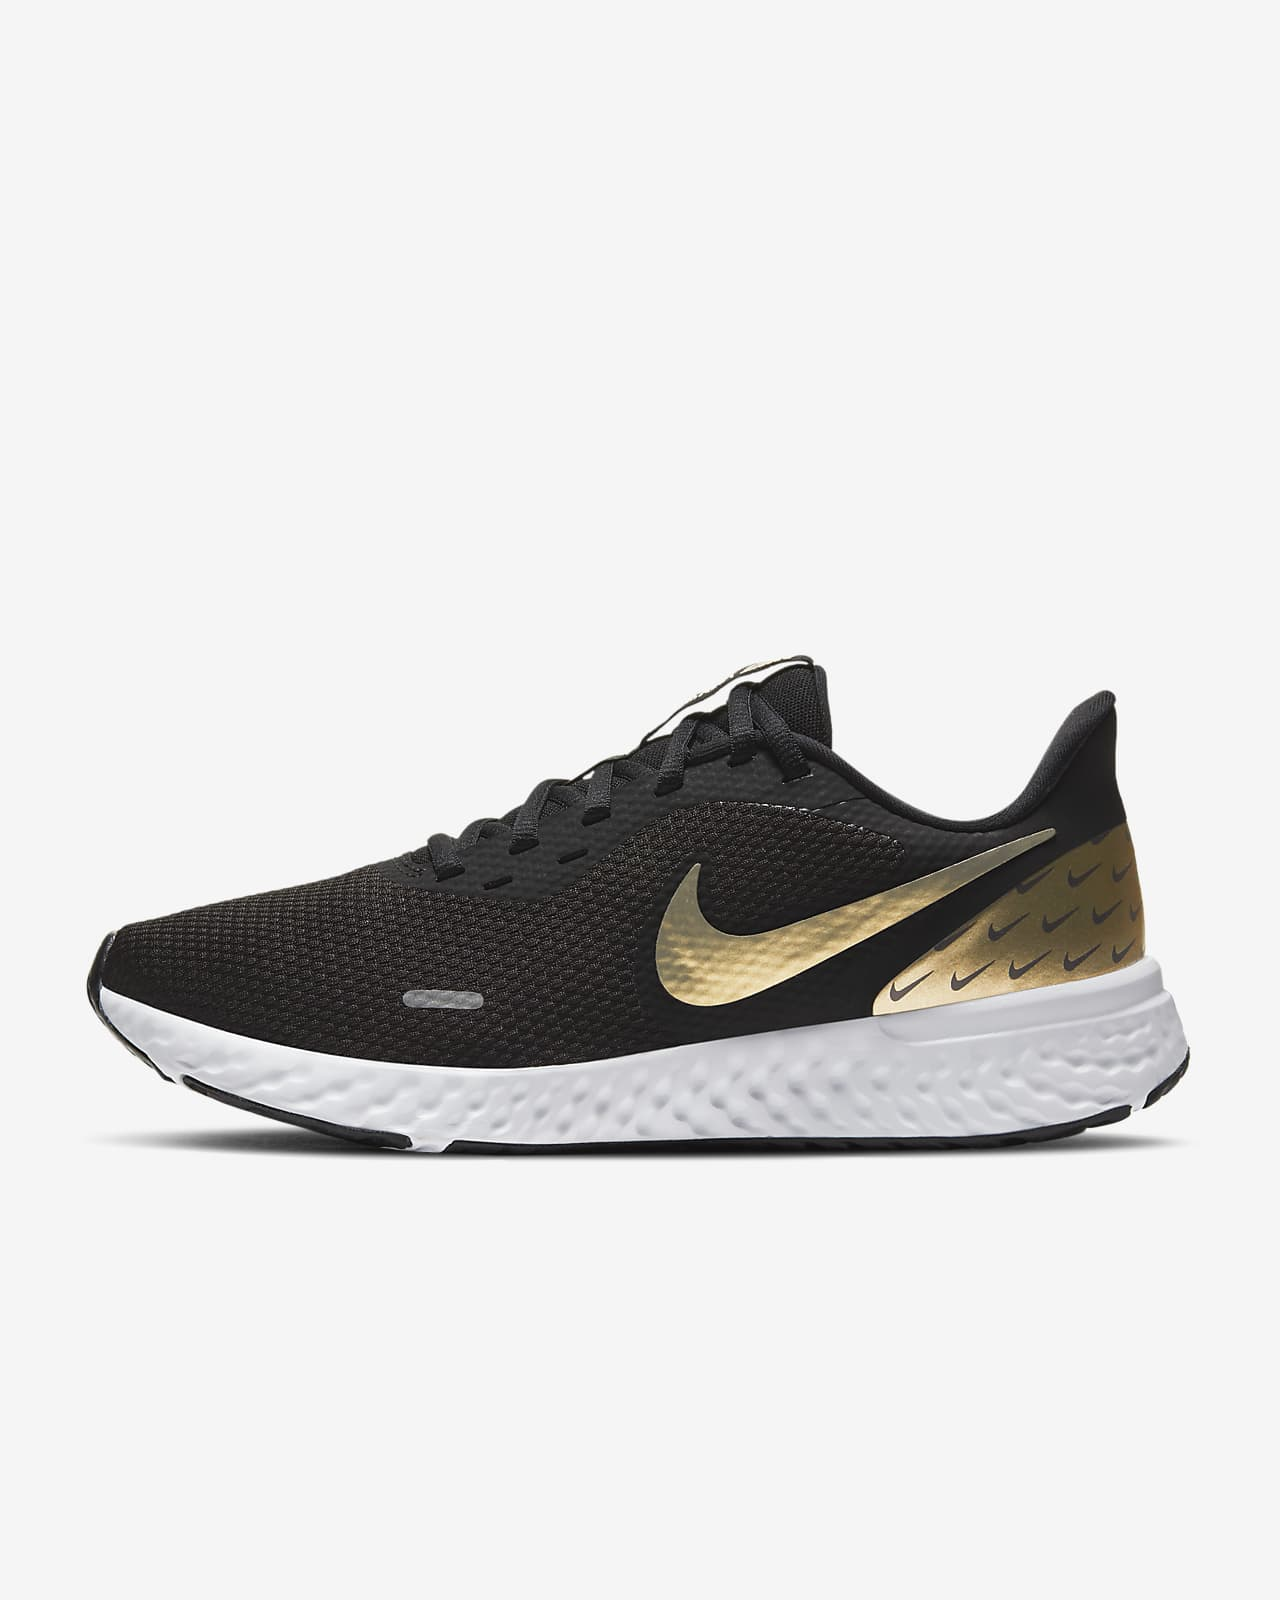 Nike Revolution 5 Premium Women's Running Shoe